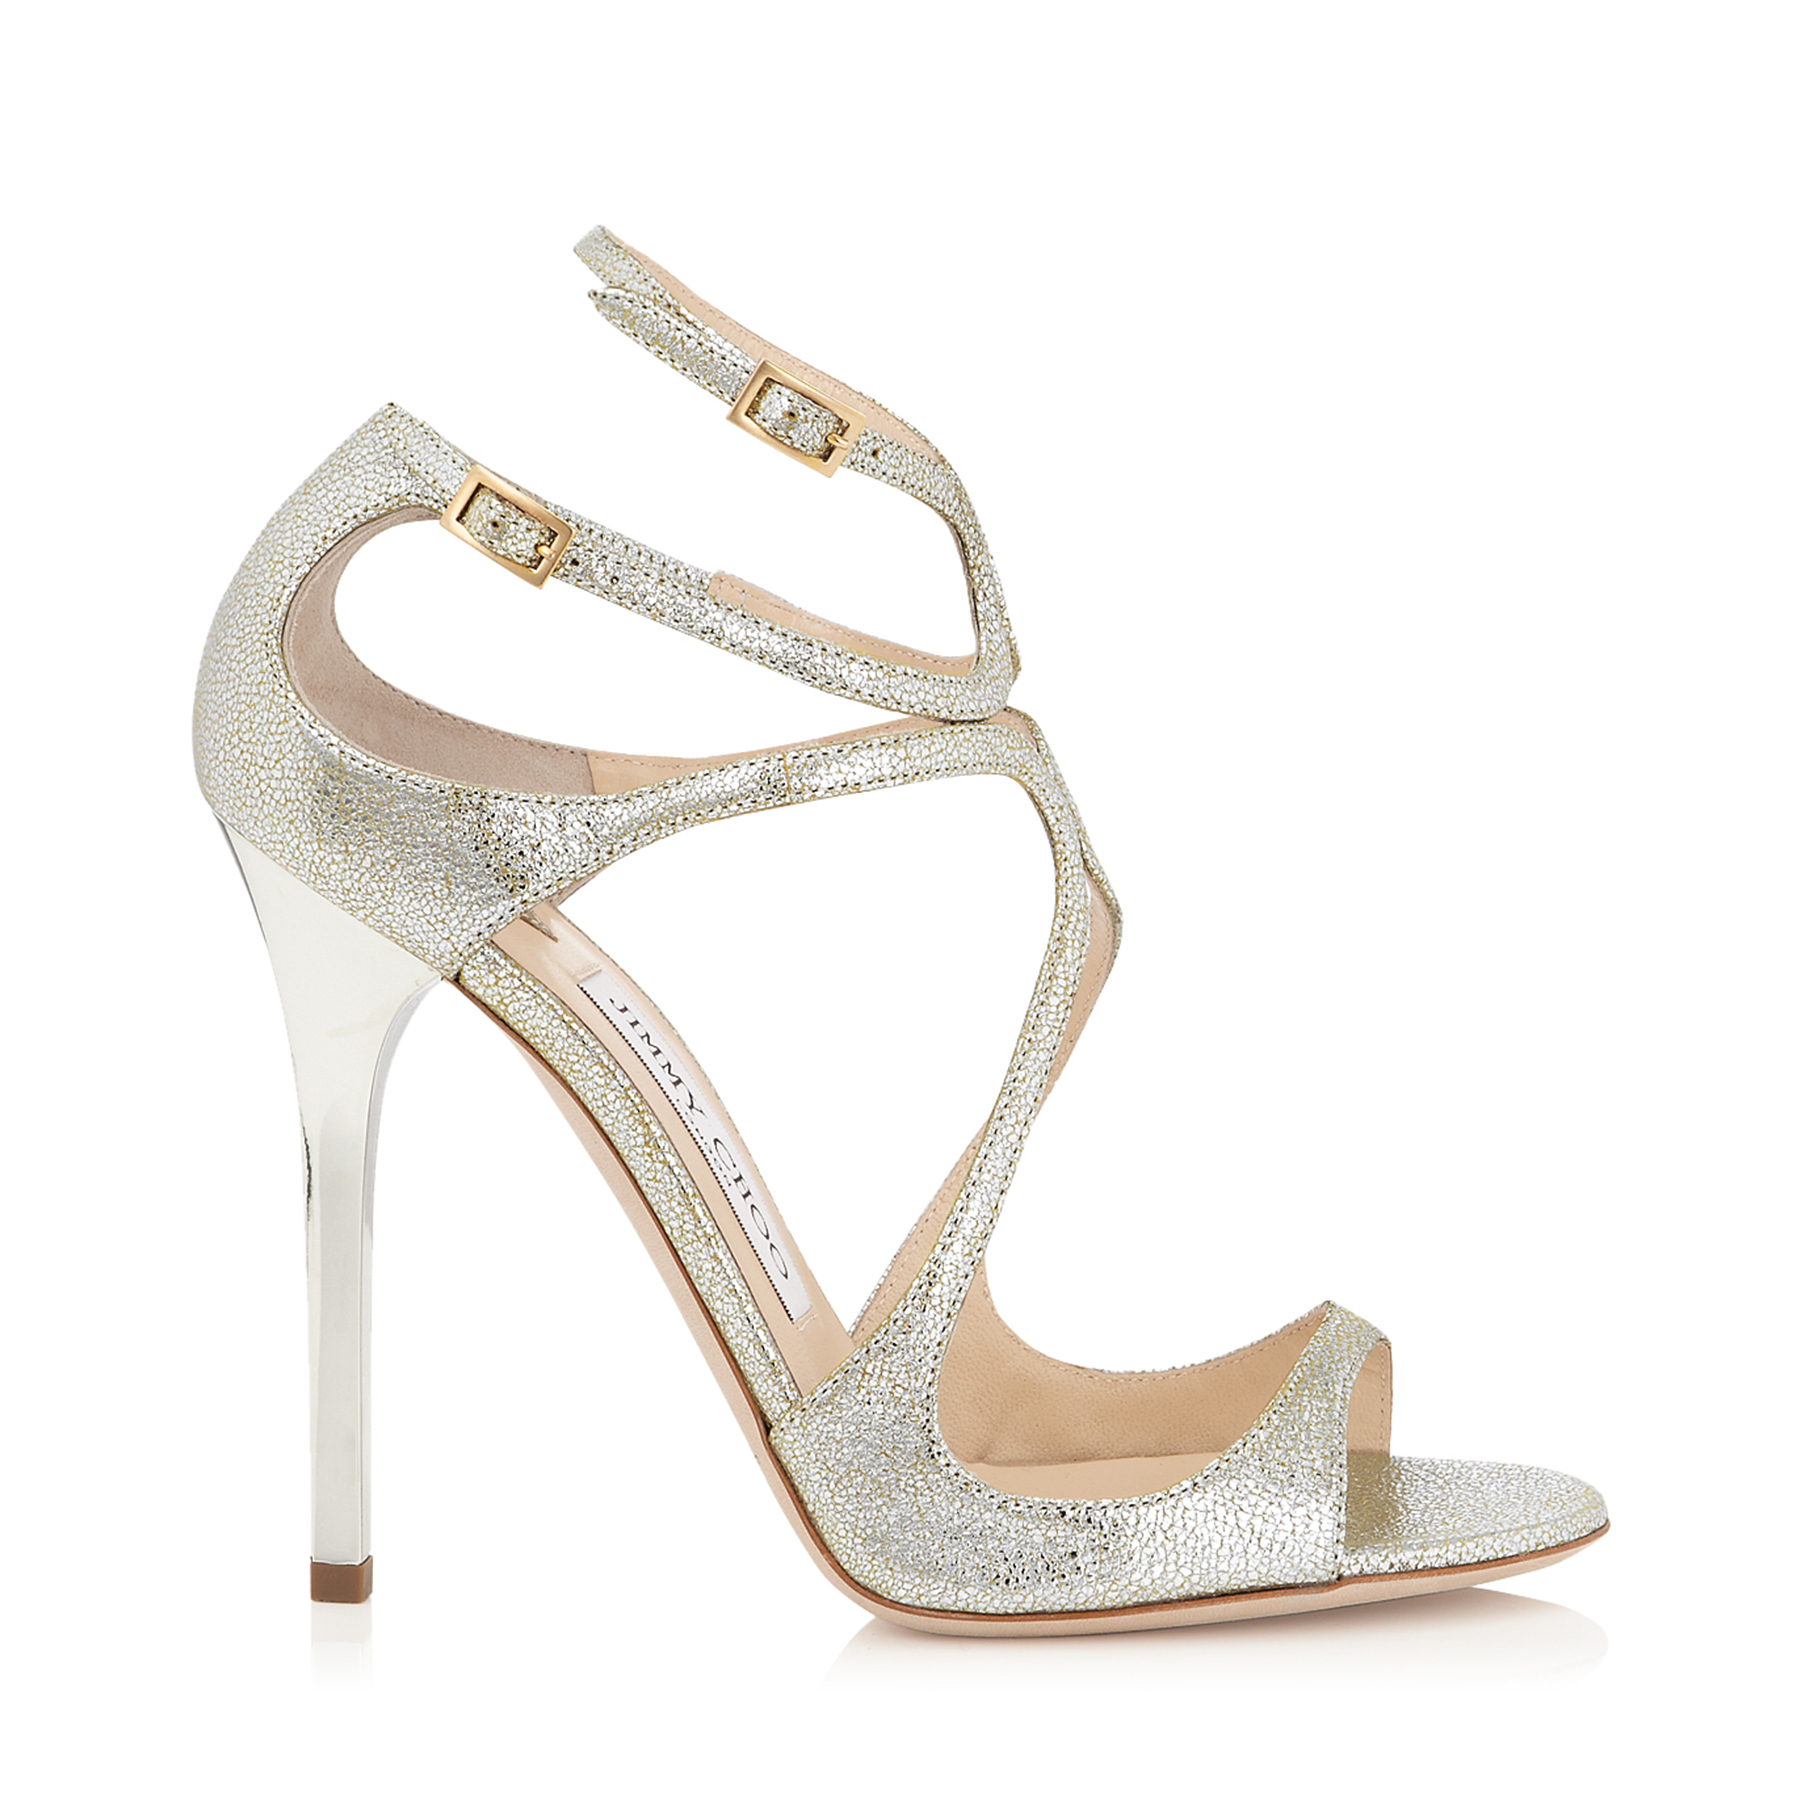 Champagne Glitter Leather Sandals | Lance | JIMMY CHOO